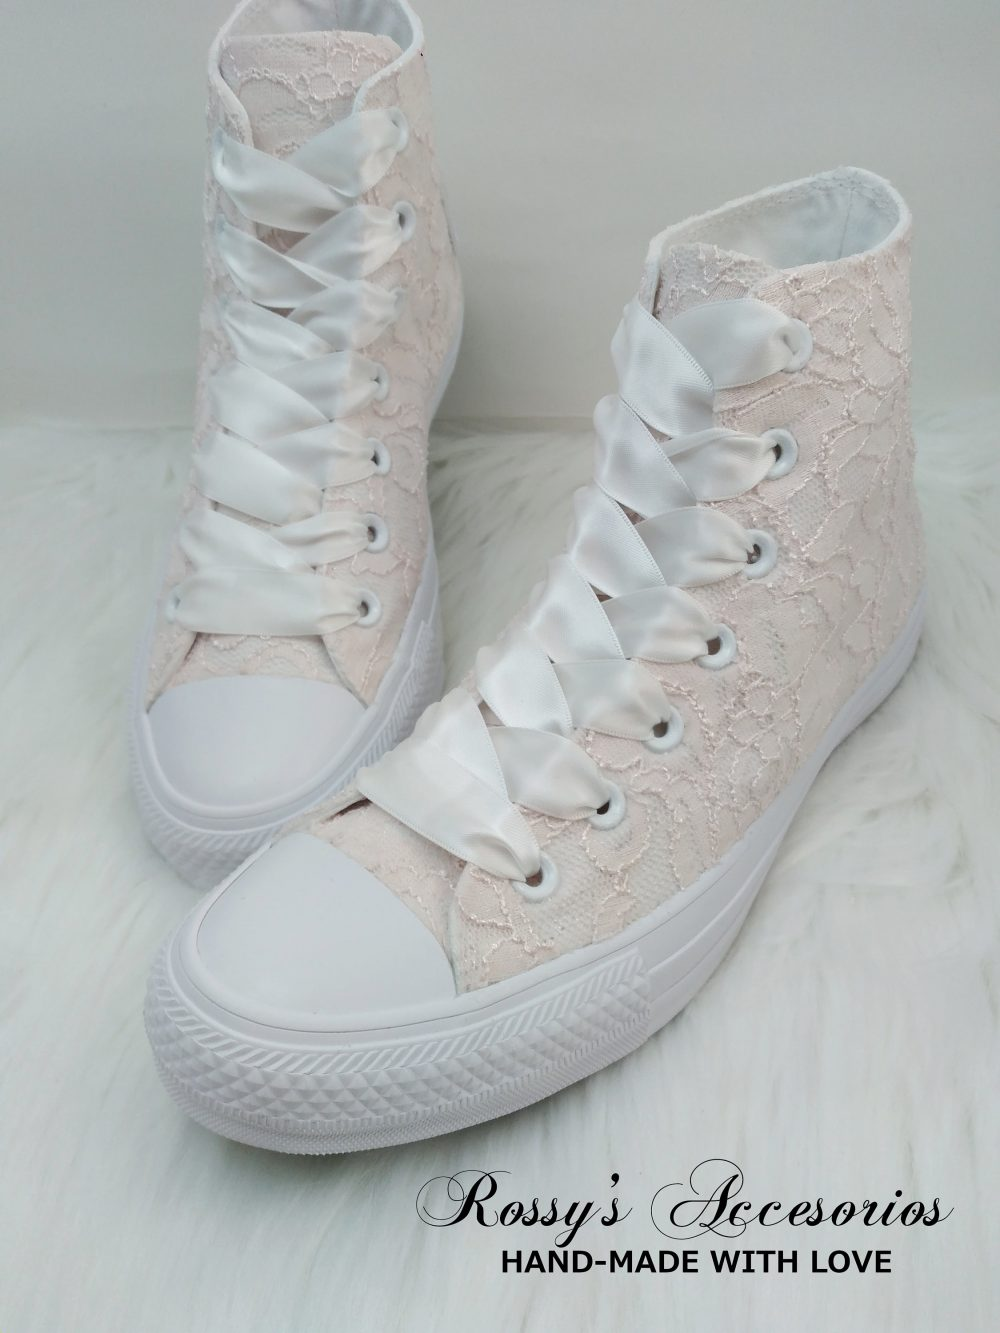 Blush Lace High Top Converse/Women's Converse/ Wedding /Bridal Sneakers For Bride